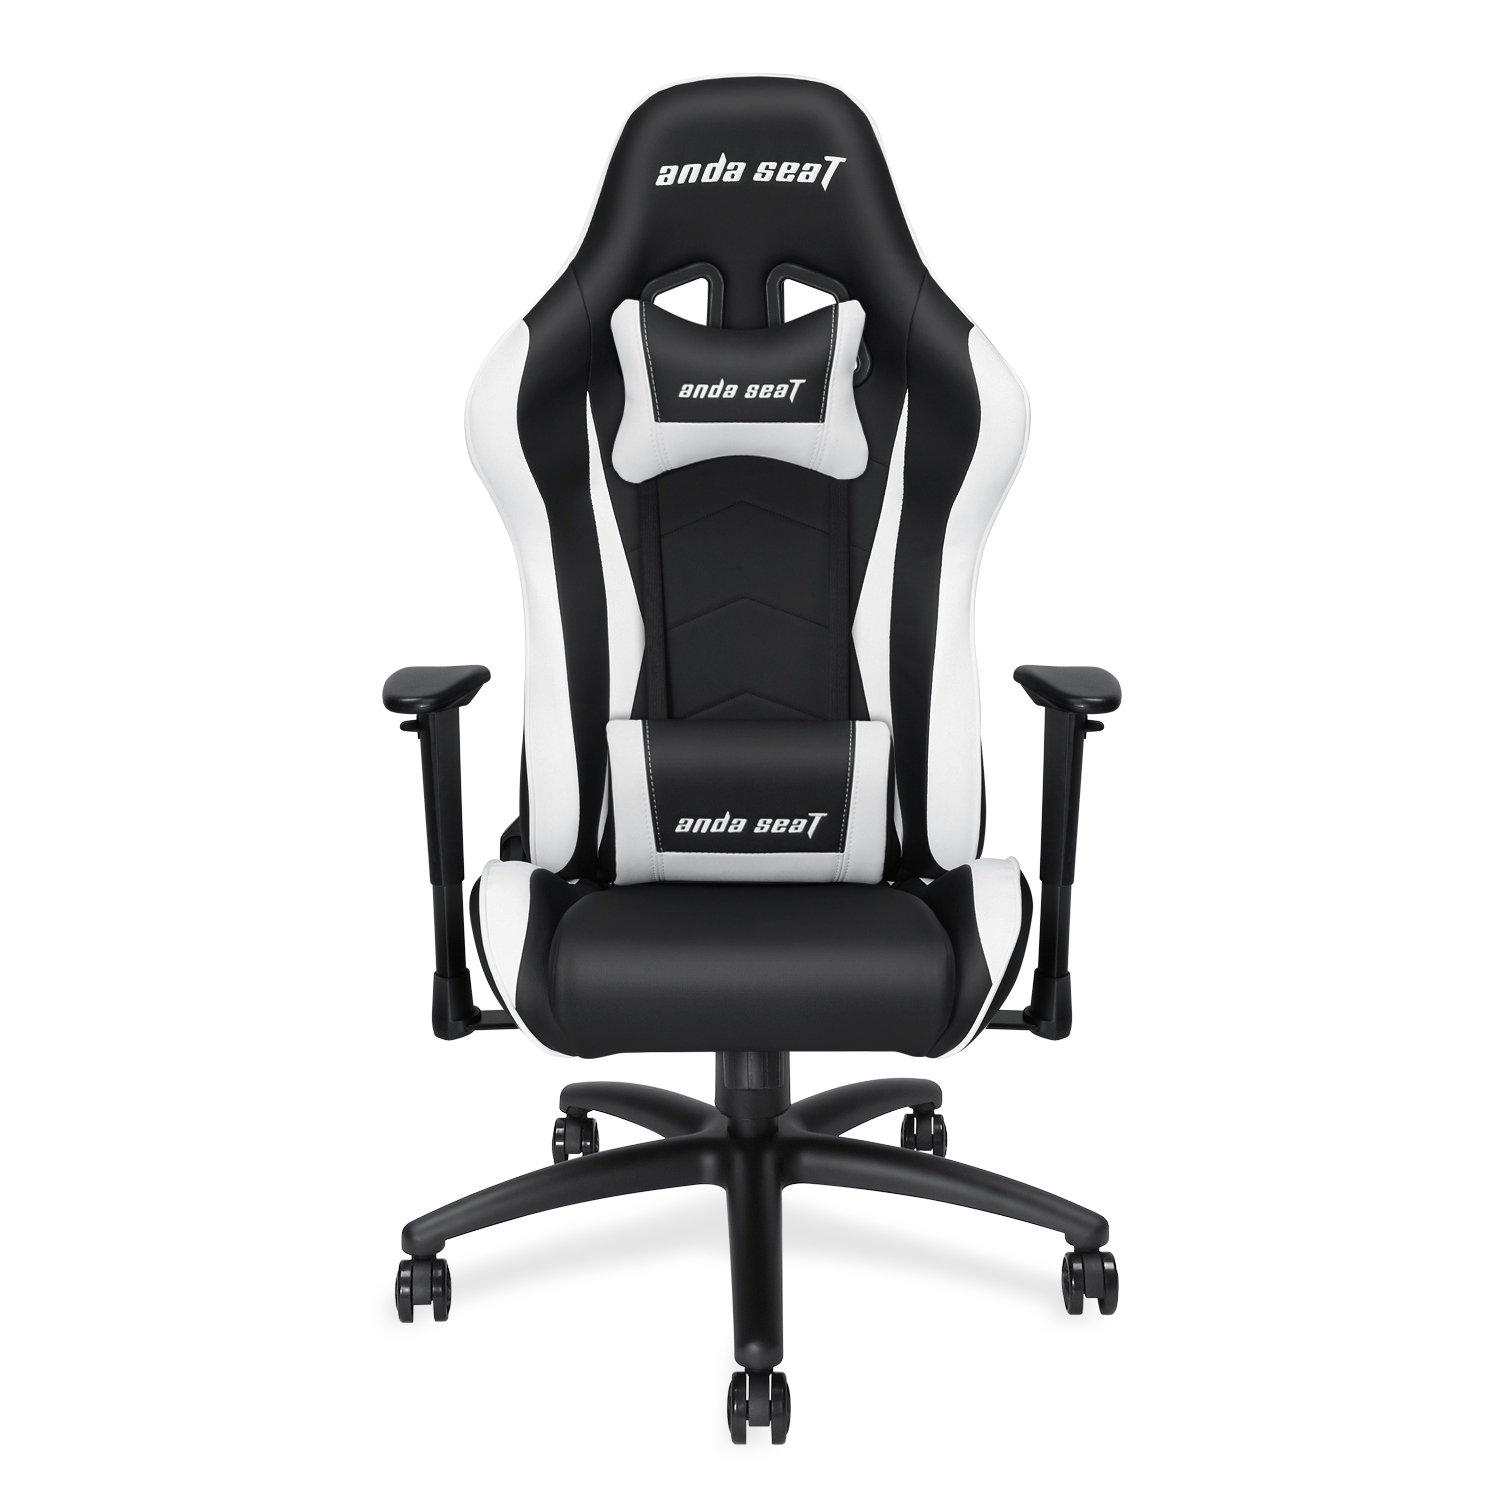 Anda Seat Axe Series Racing Style Gaming Chair,High Back Computer Chair with Lumbar Support Headrest